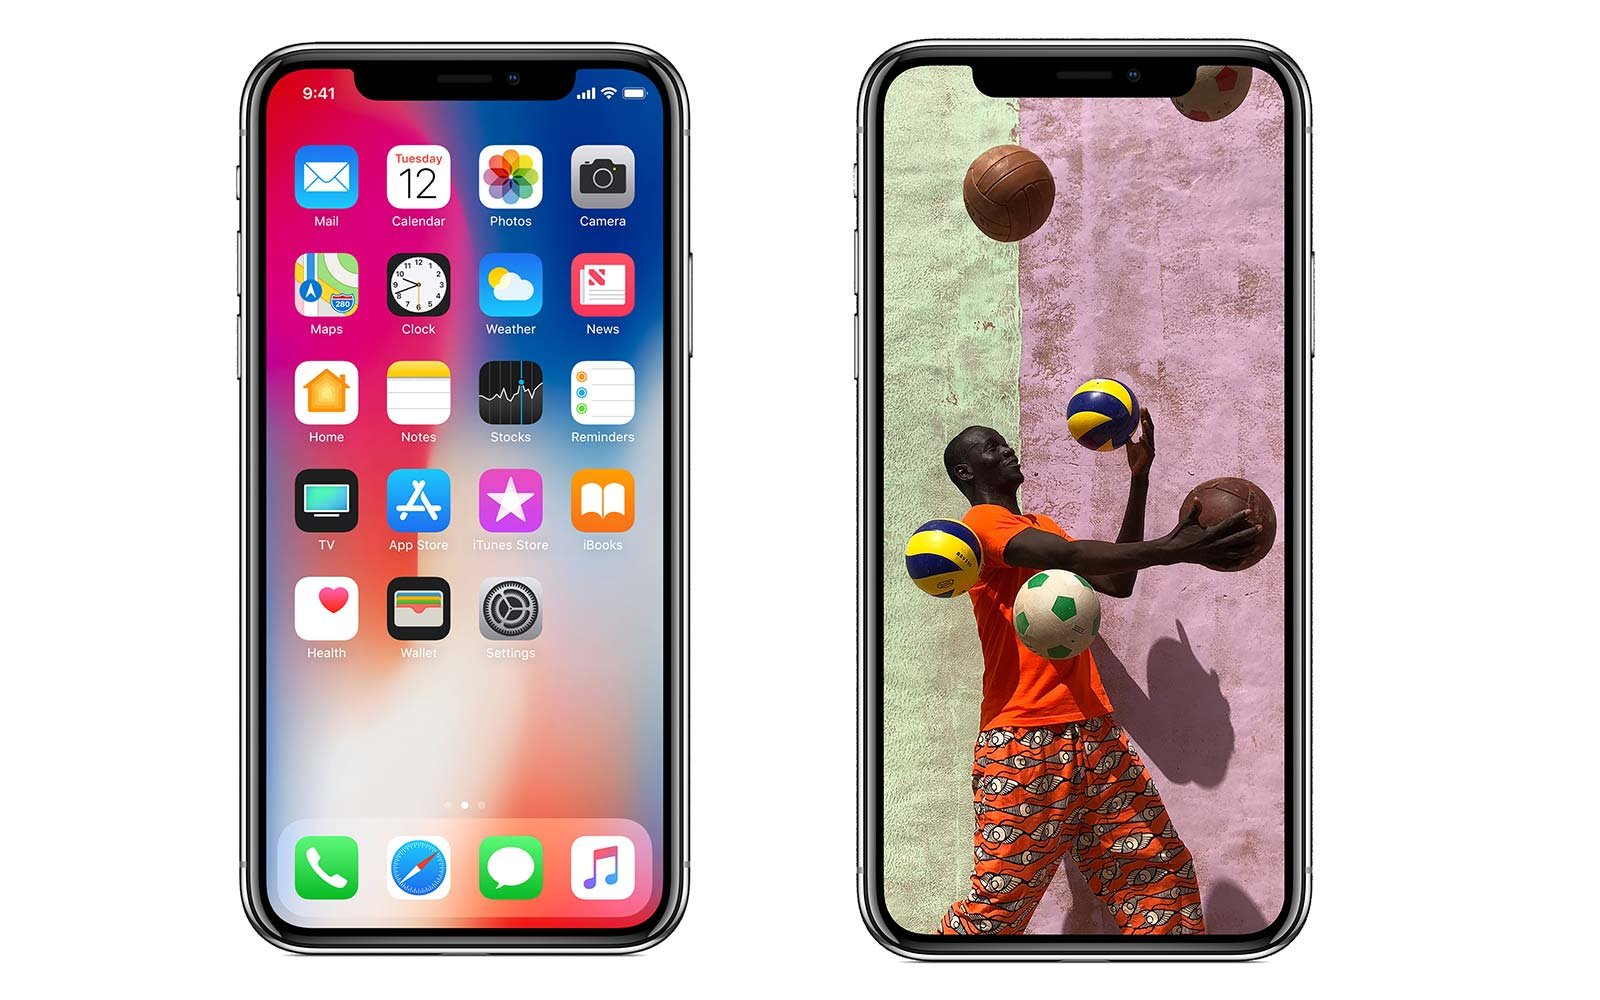 The New Iphone X Costs 999 And Features An Edge To Edge Screen